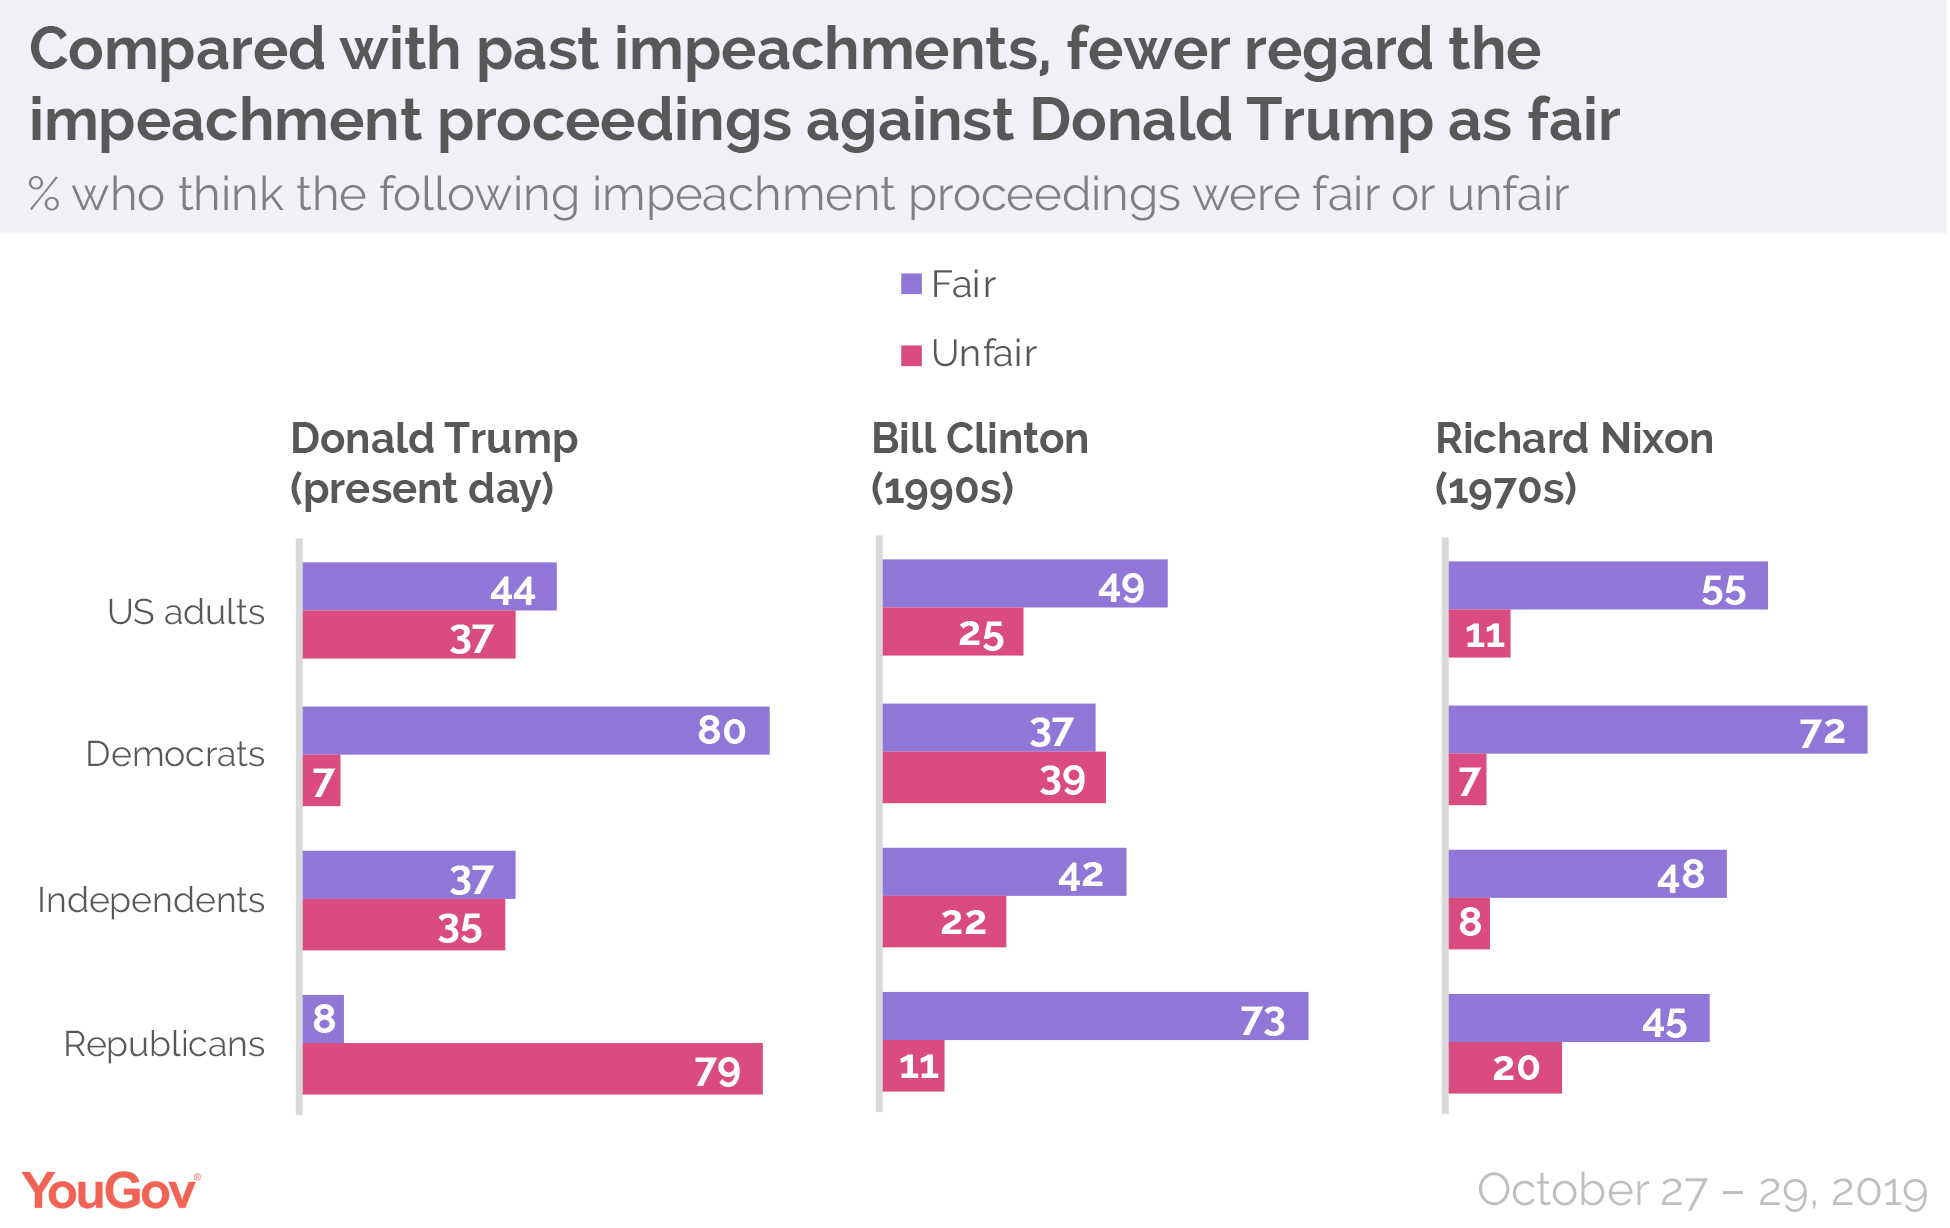 Compared with past impeachments, fewer regard the impeachment proceedings against Donald Trump as fair